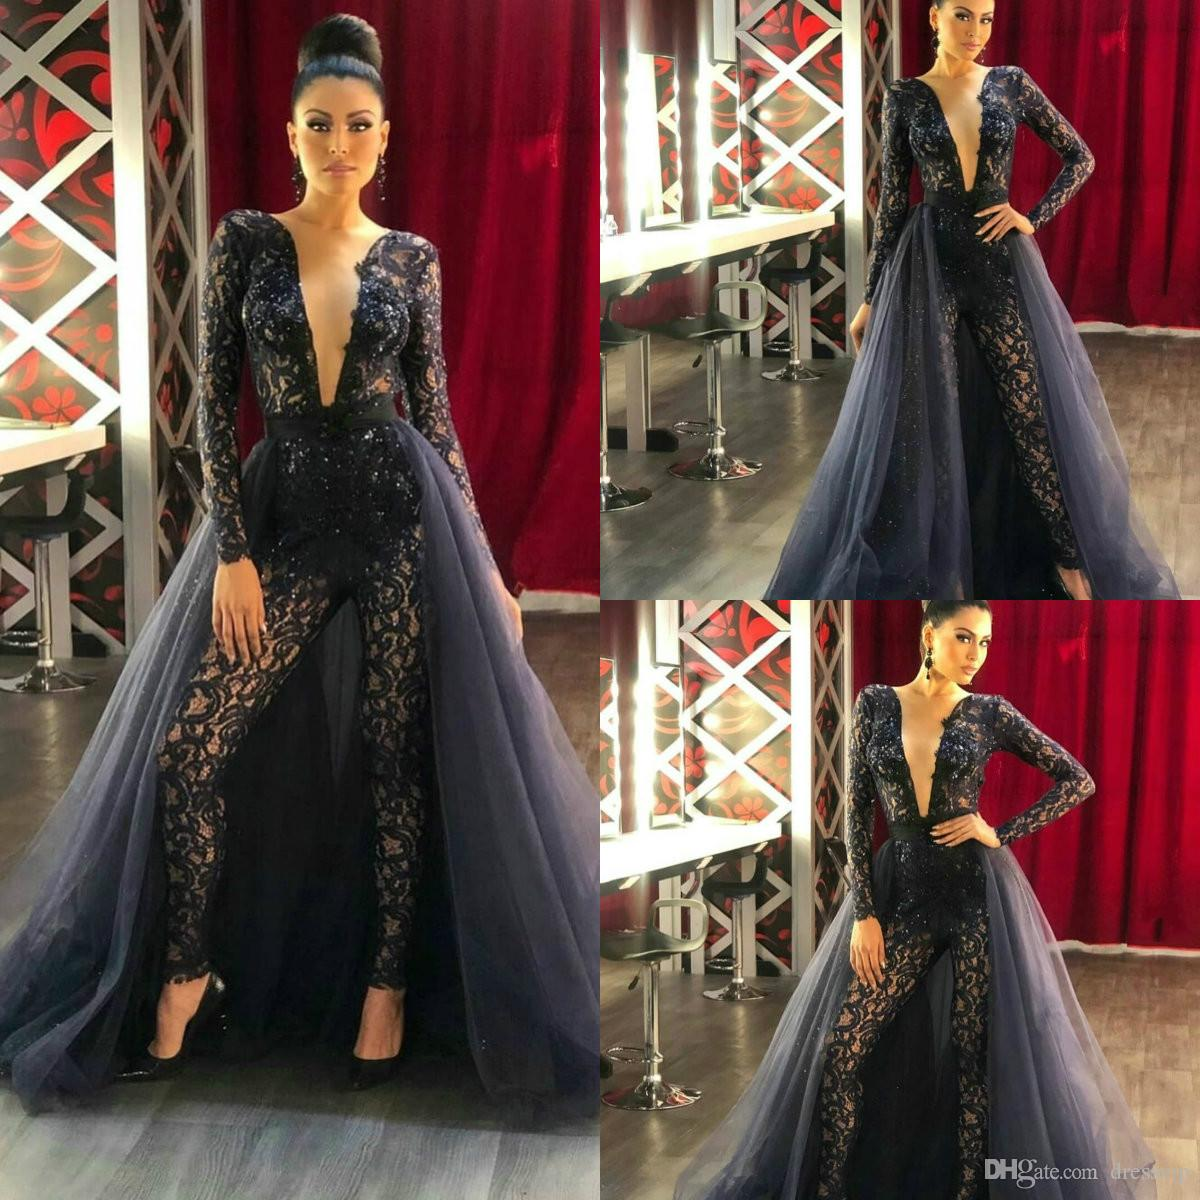 cd07b8e9c04 Women Jumpsuit With Long Train Beaded Sexy Evening Gowns Deep V Neck Prom Dress  Sweep Train Lace Appliqued Party Zuhair Murad Dress Vestidos Dress Shop ...